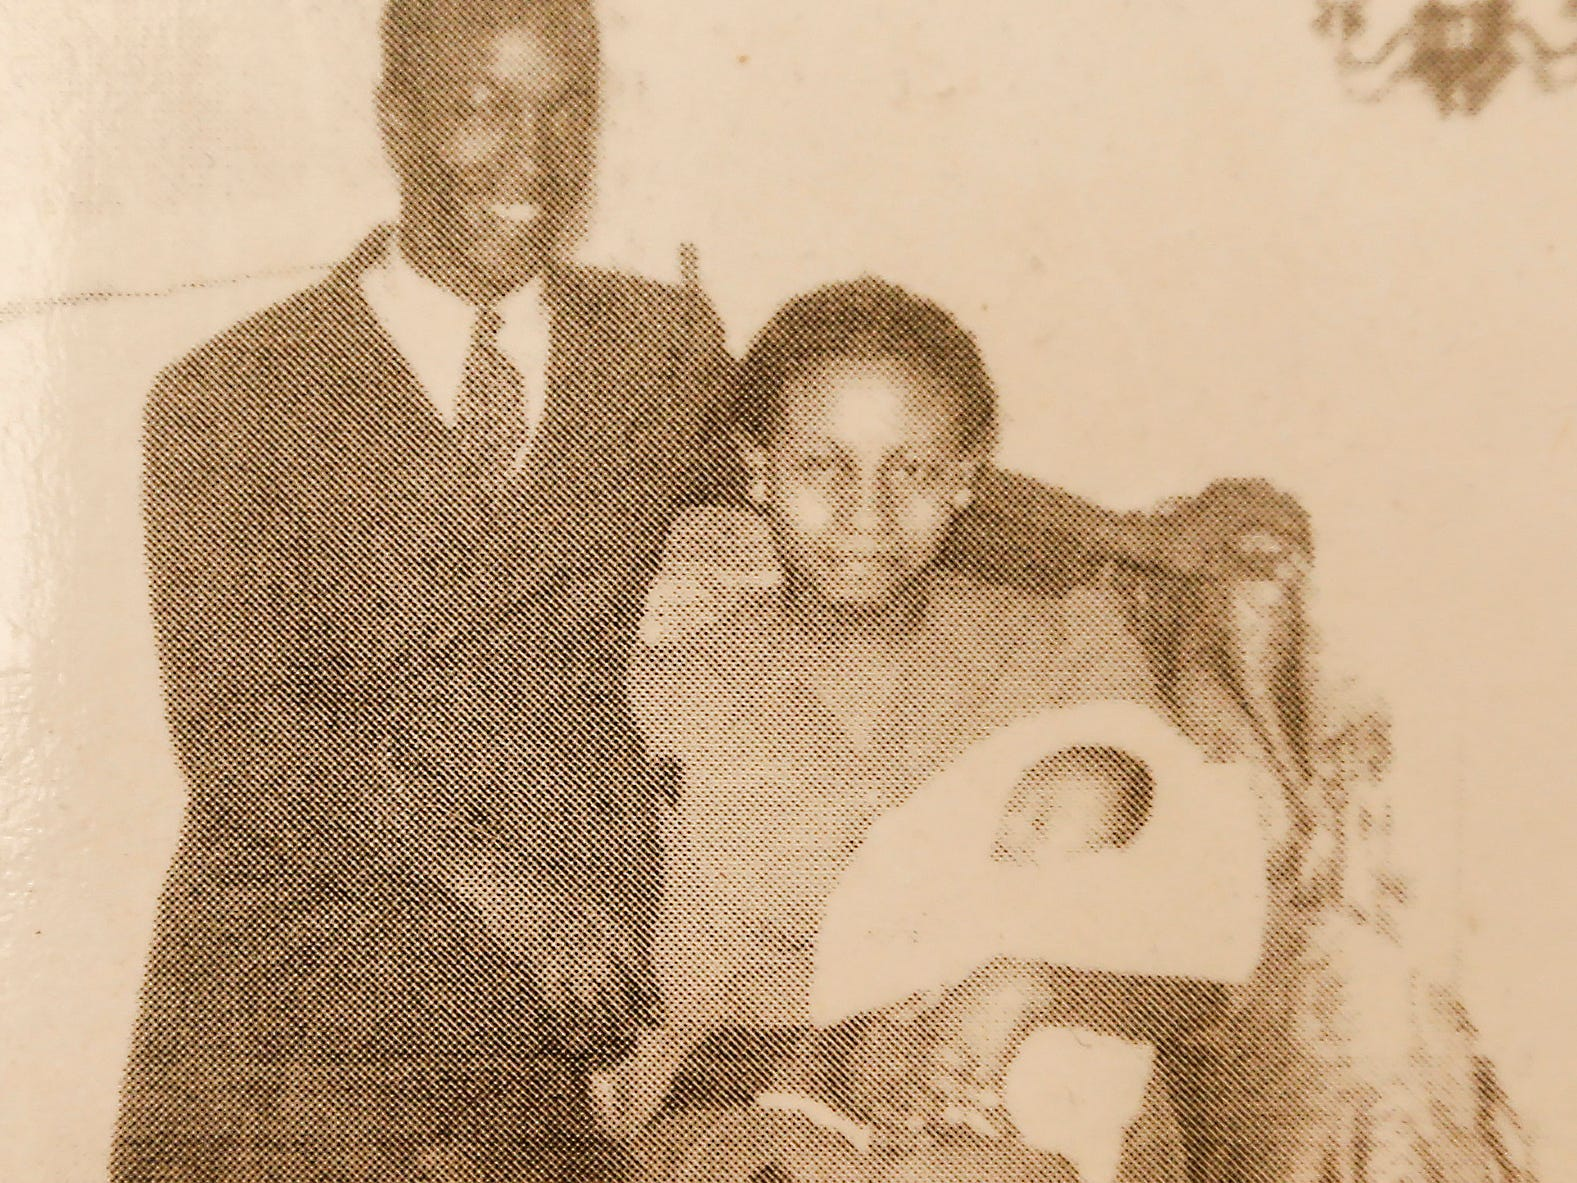 Denny Whayne pictured with his parents as an infant.